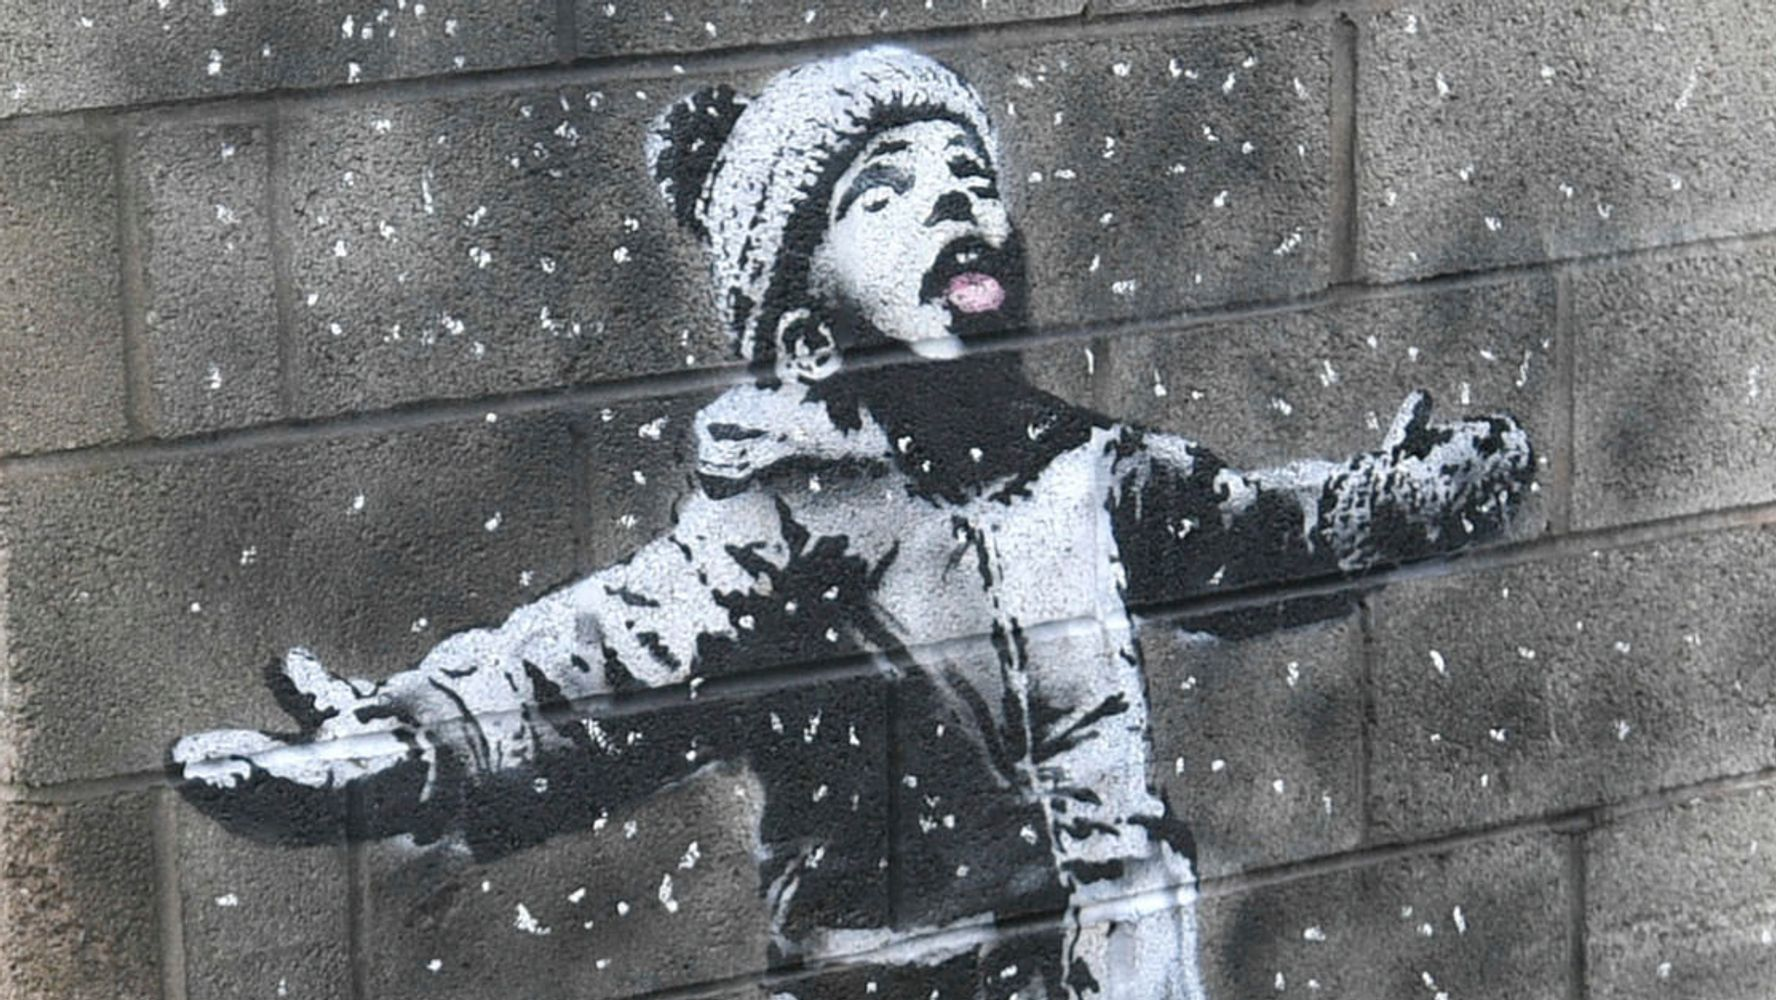 Banksy Sends Haunting Environmental Message With New Holiday Street